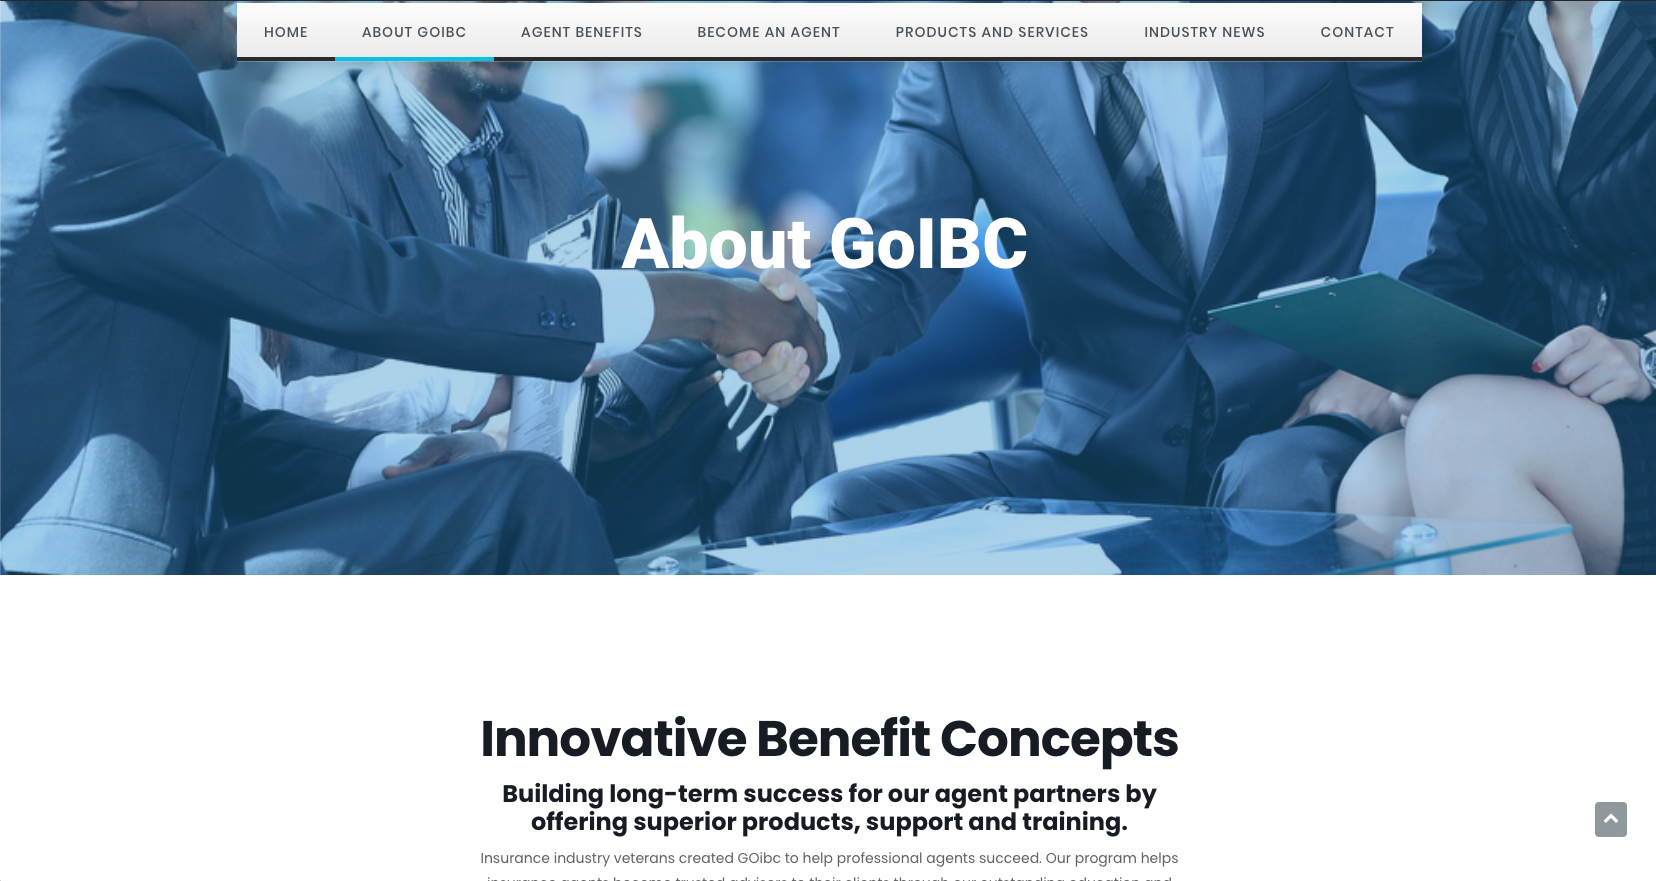 Innovative Benefit Concepts